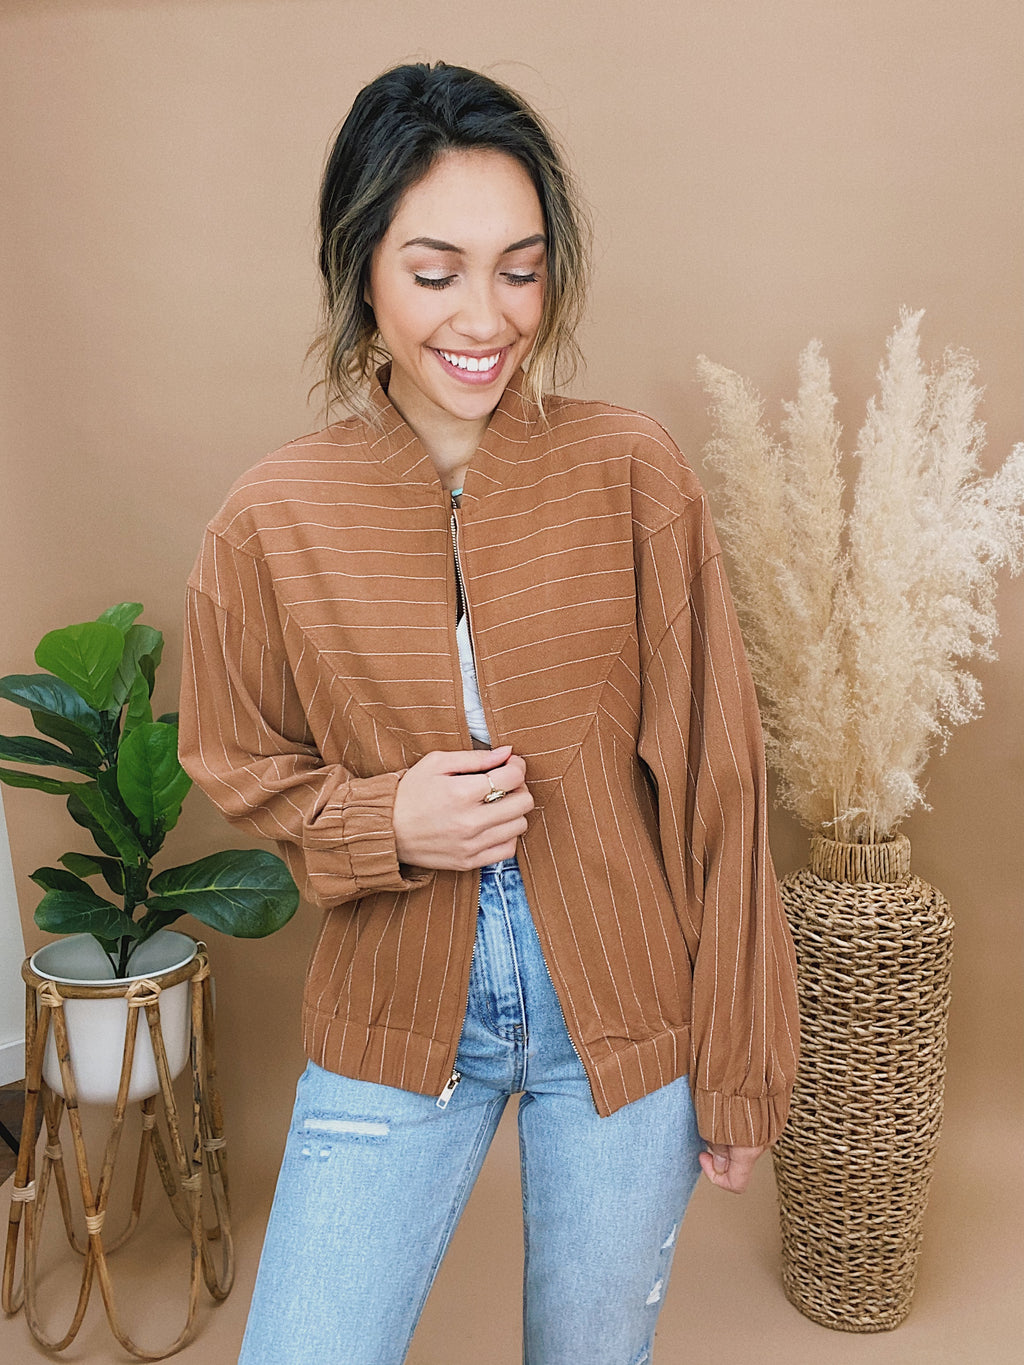 karoline striped sweater